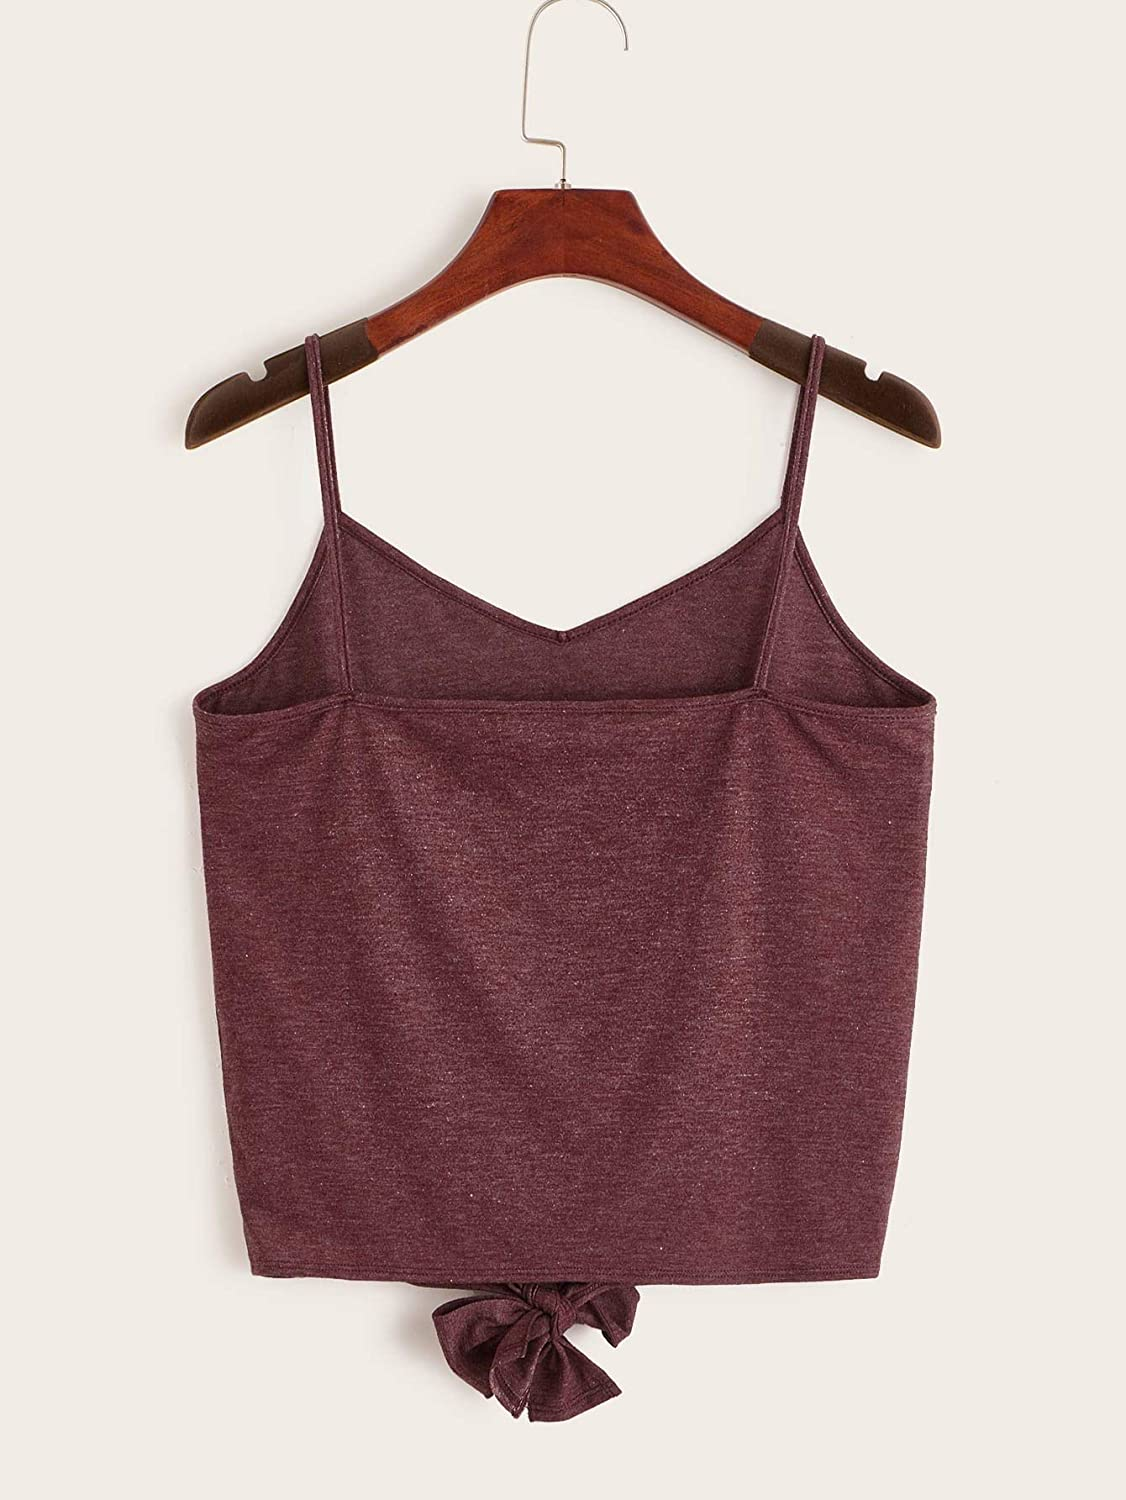 Floerns Women's Causal Spaghetti Strap Tie Knot Button Front Solid Cami Top